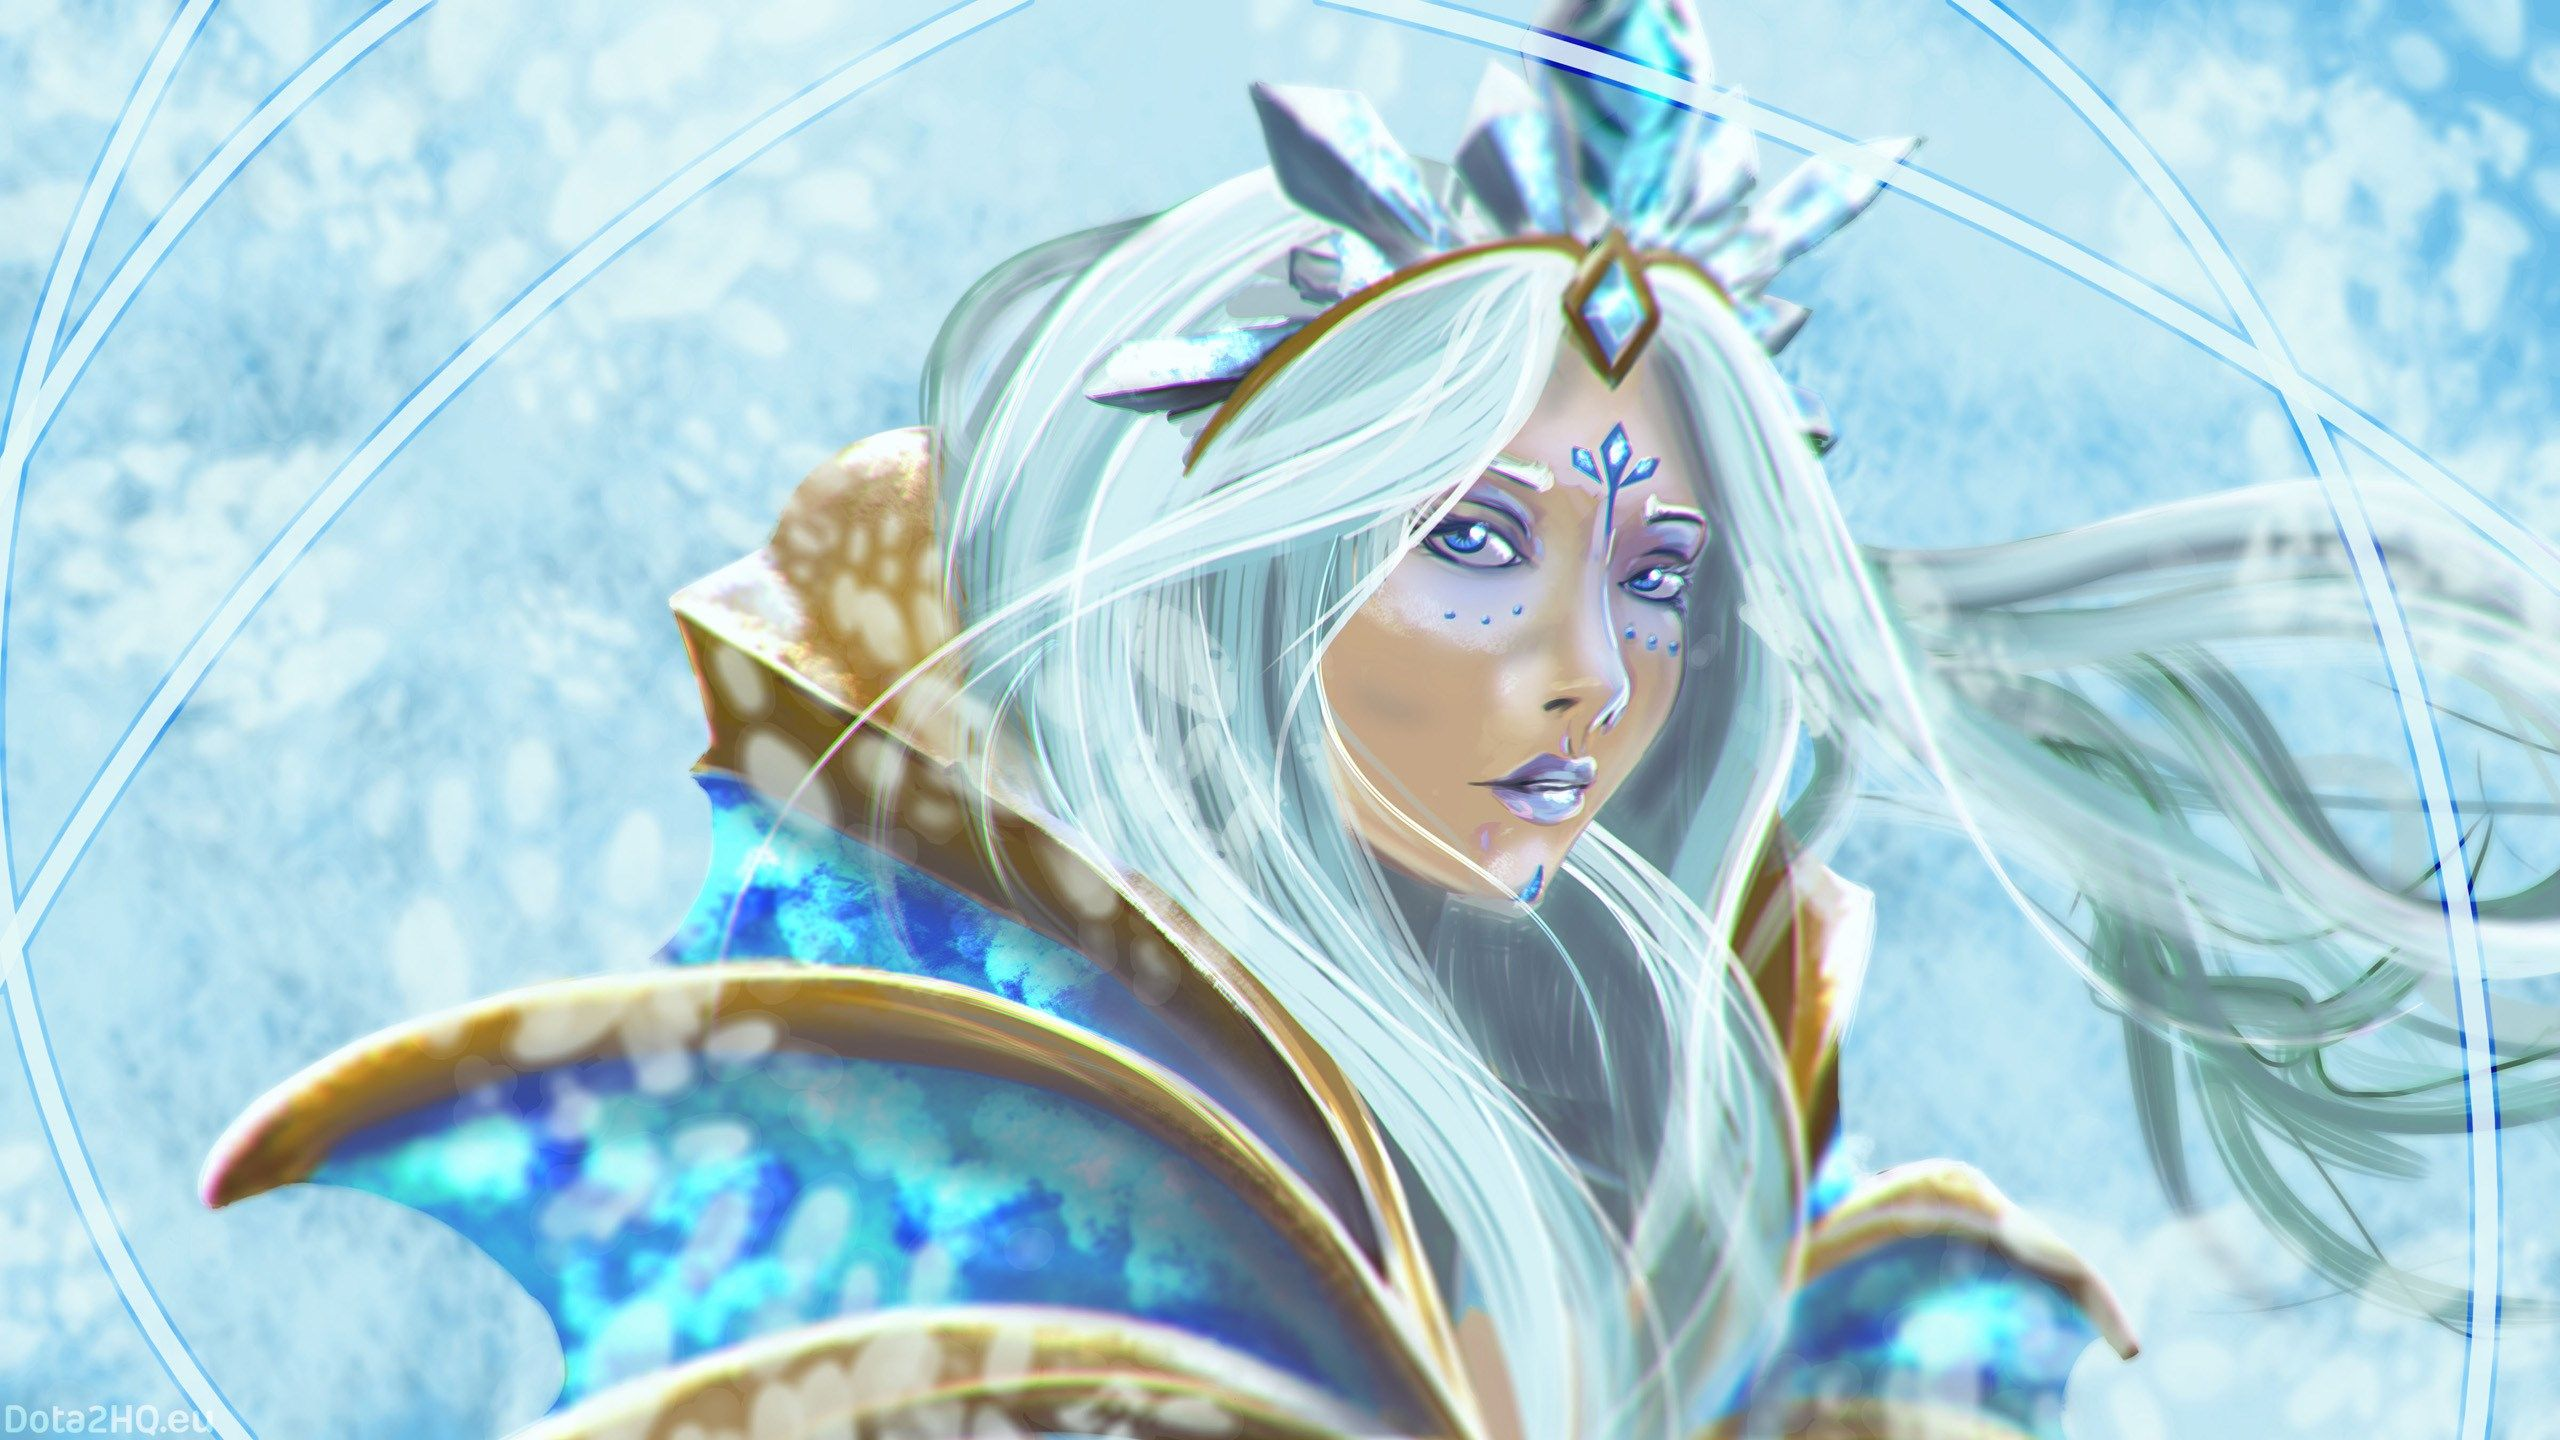 2560x1440 Crystal Maiden Dota 2 Image Wallpapers And Backgronds